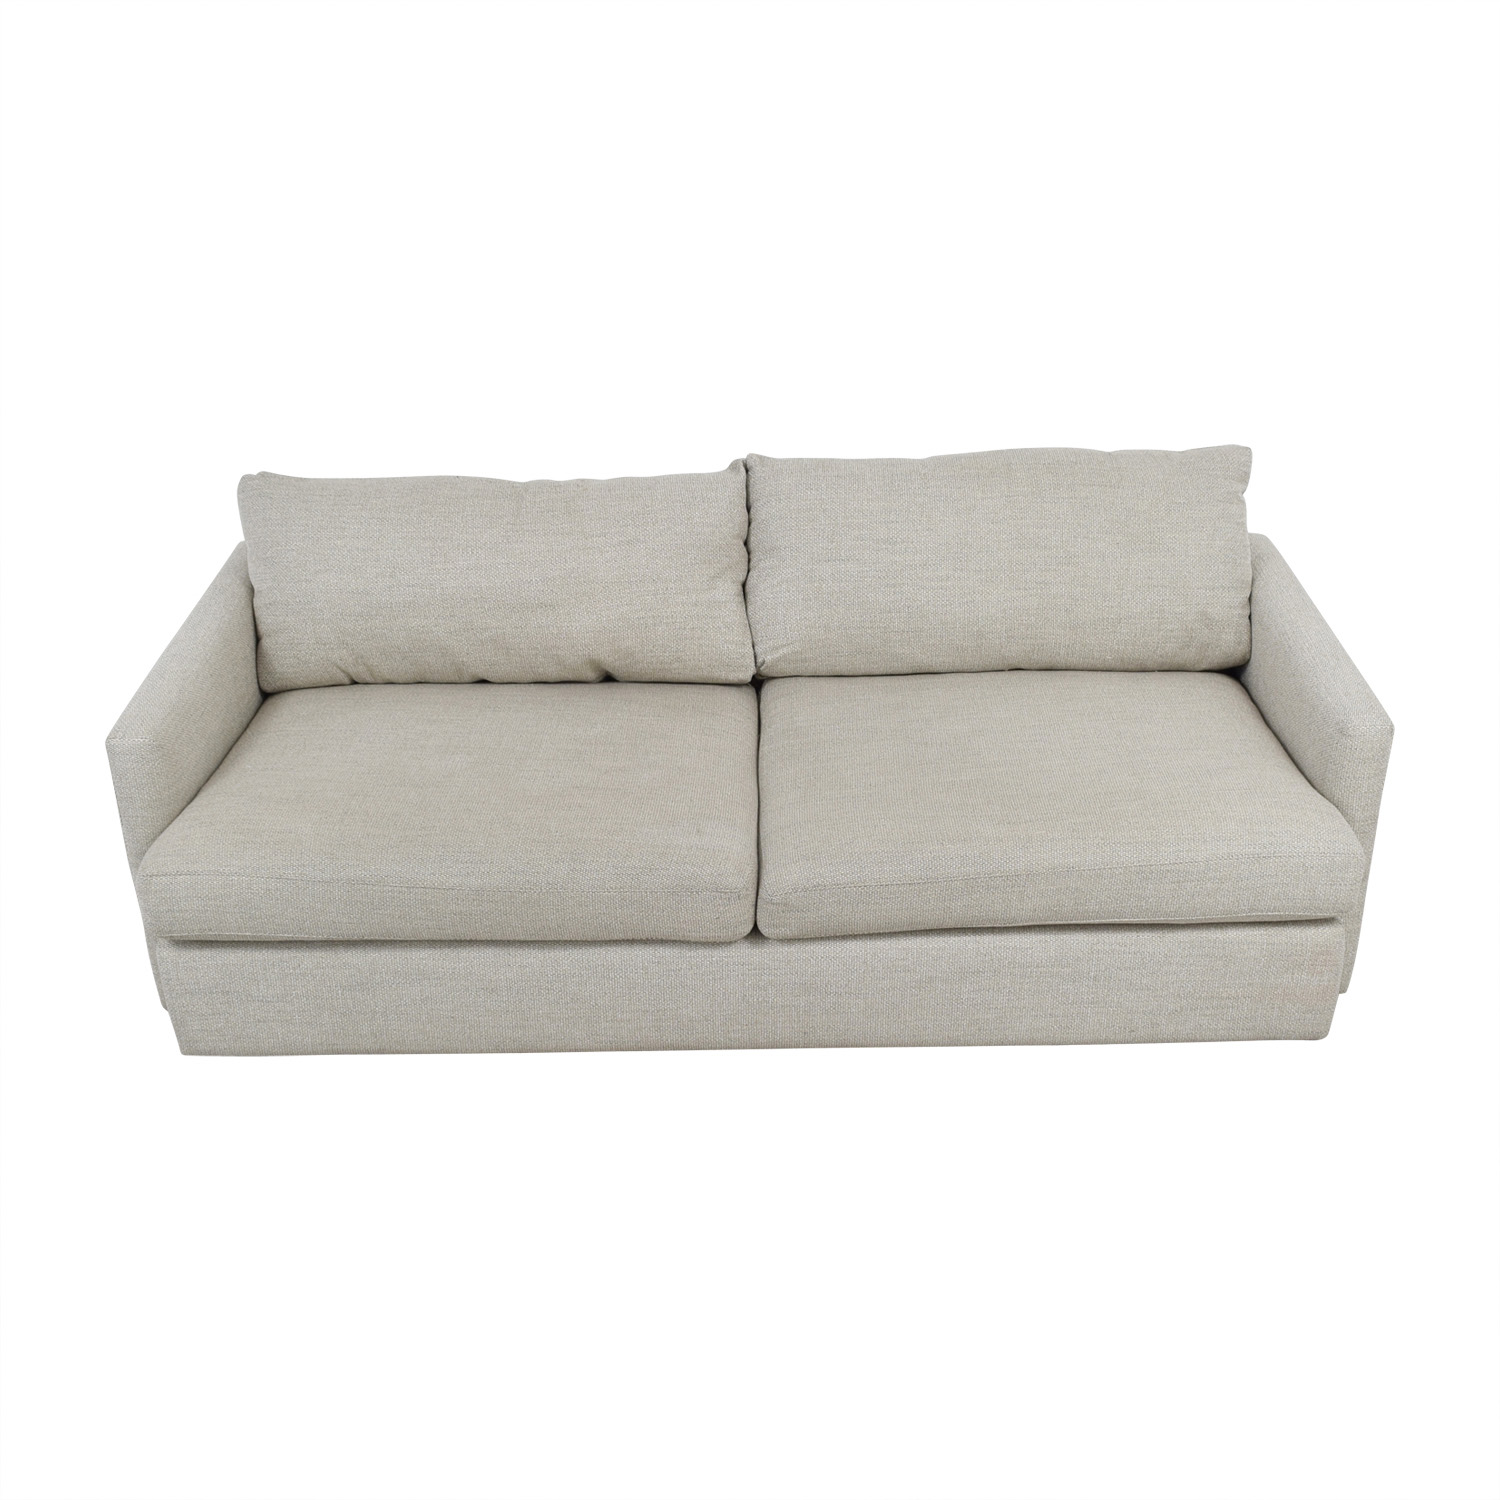 Crate & Barrel Crate & Barrel Lounge II Cement Grey Two Cushion Sofa discount